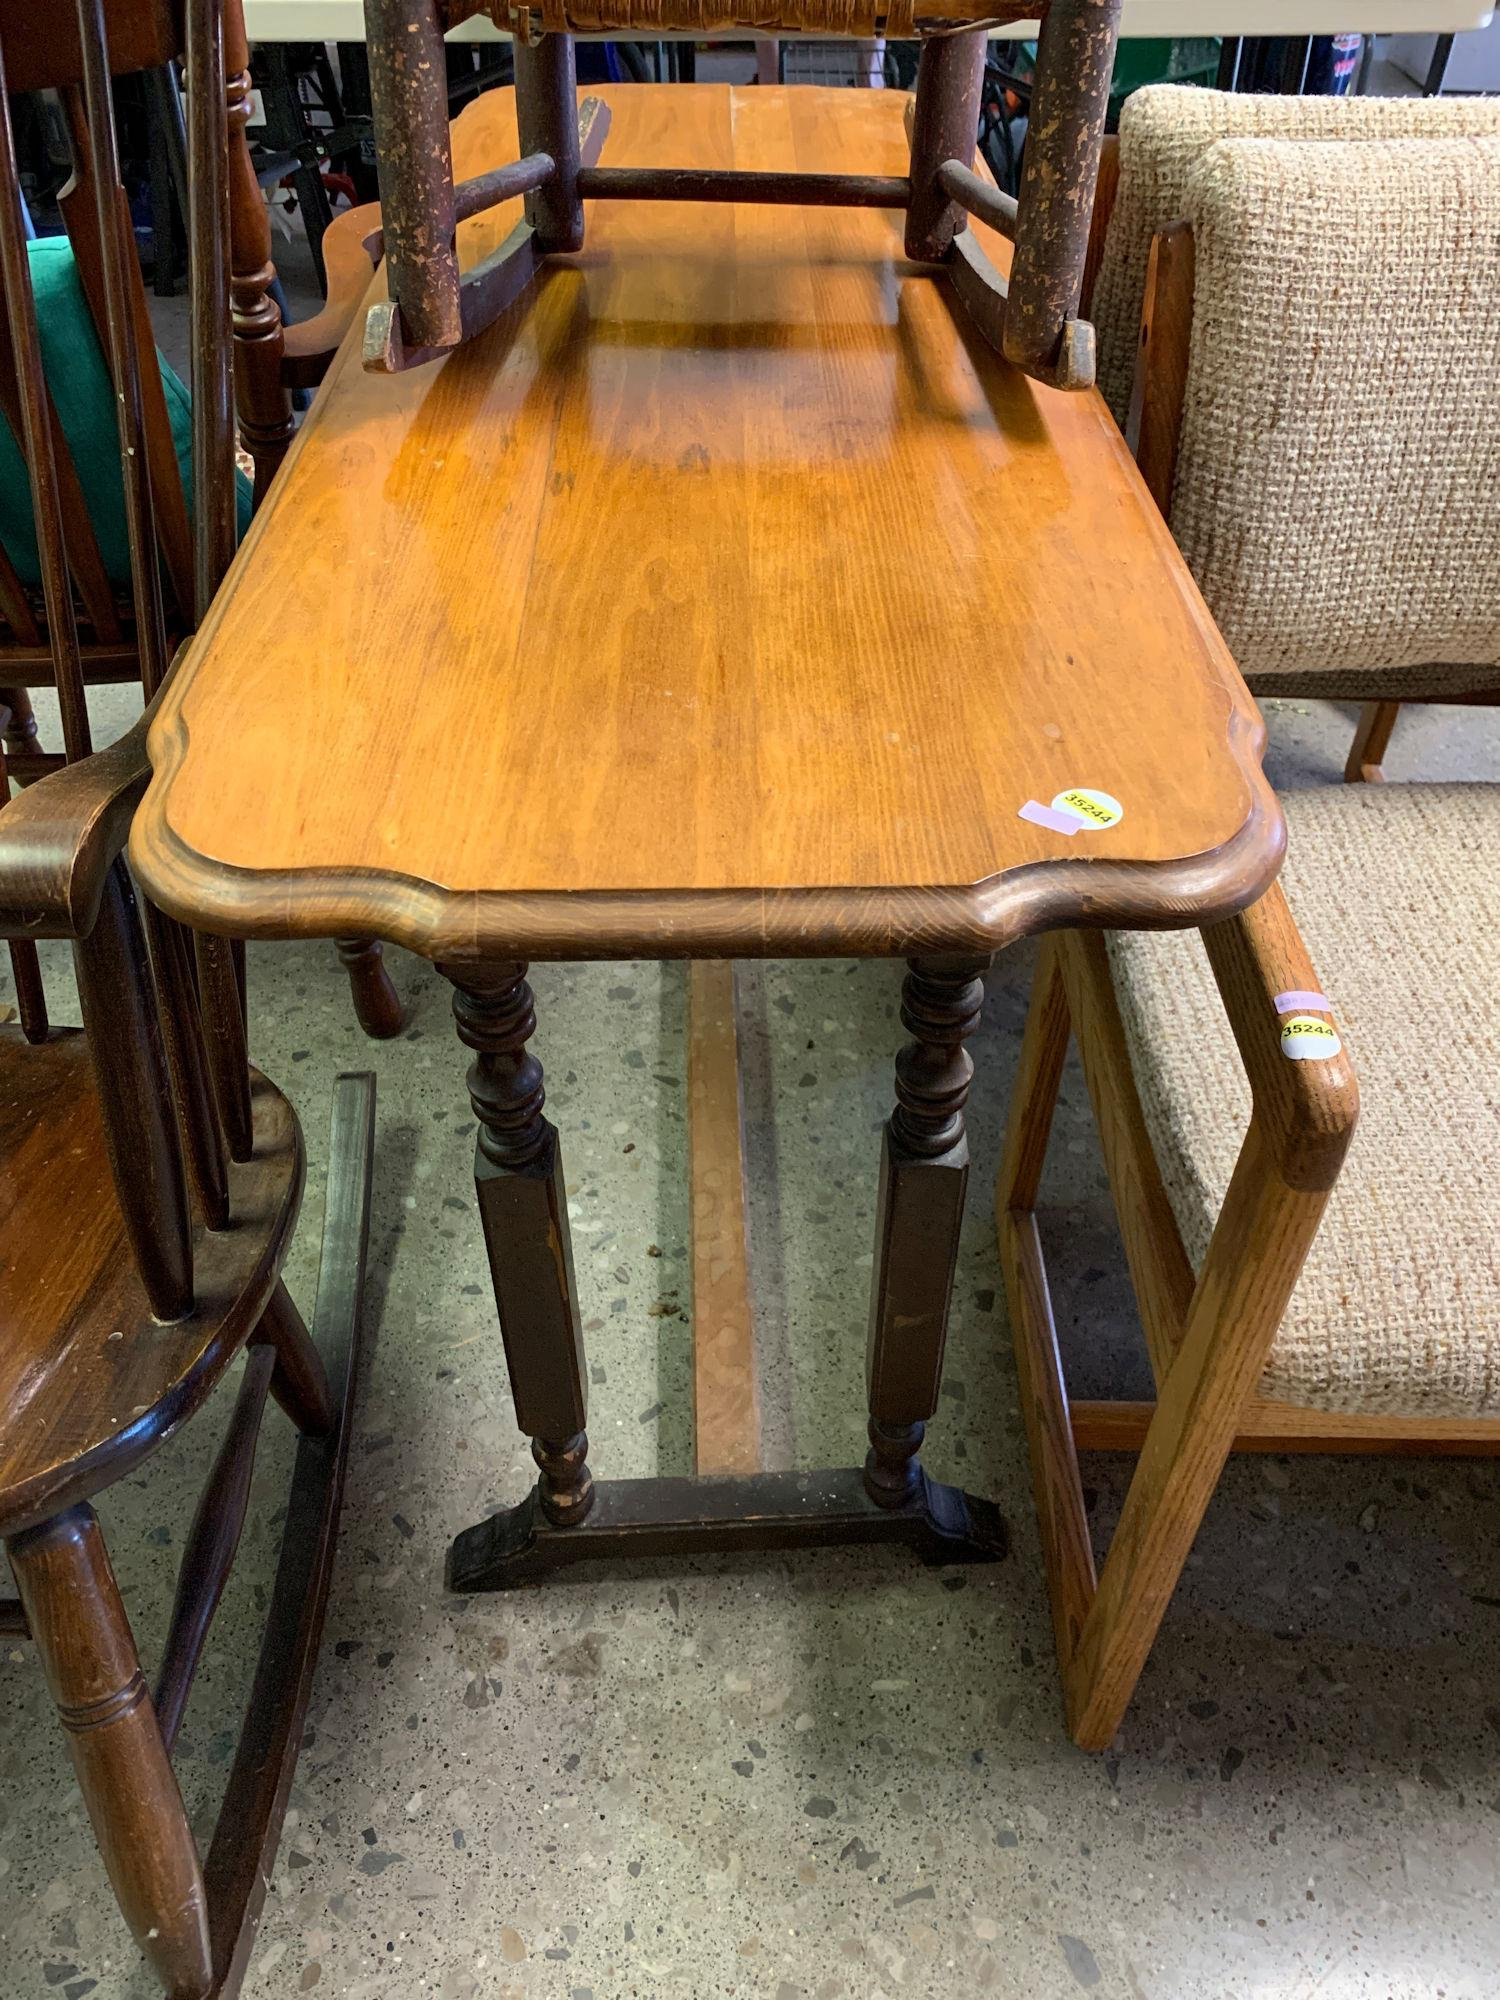 TABLE WITH STREATCHER BASE